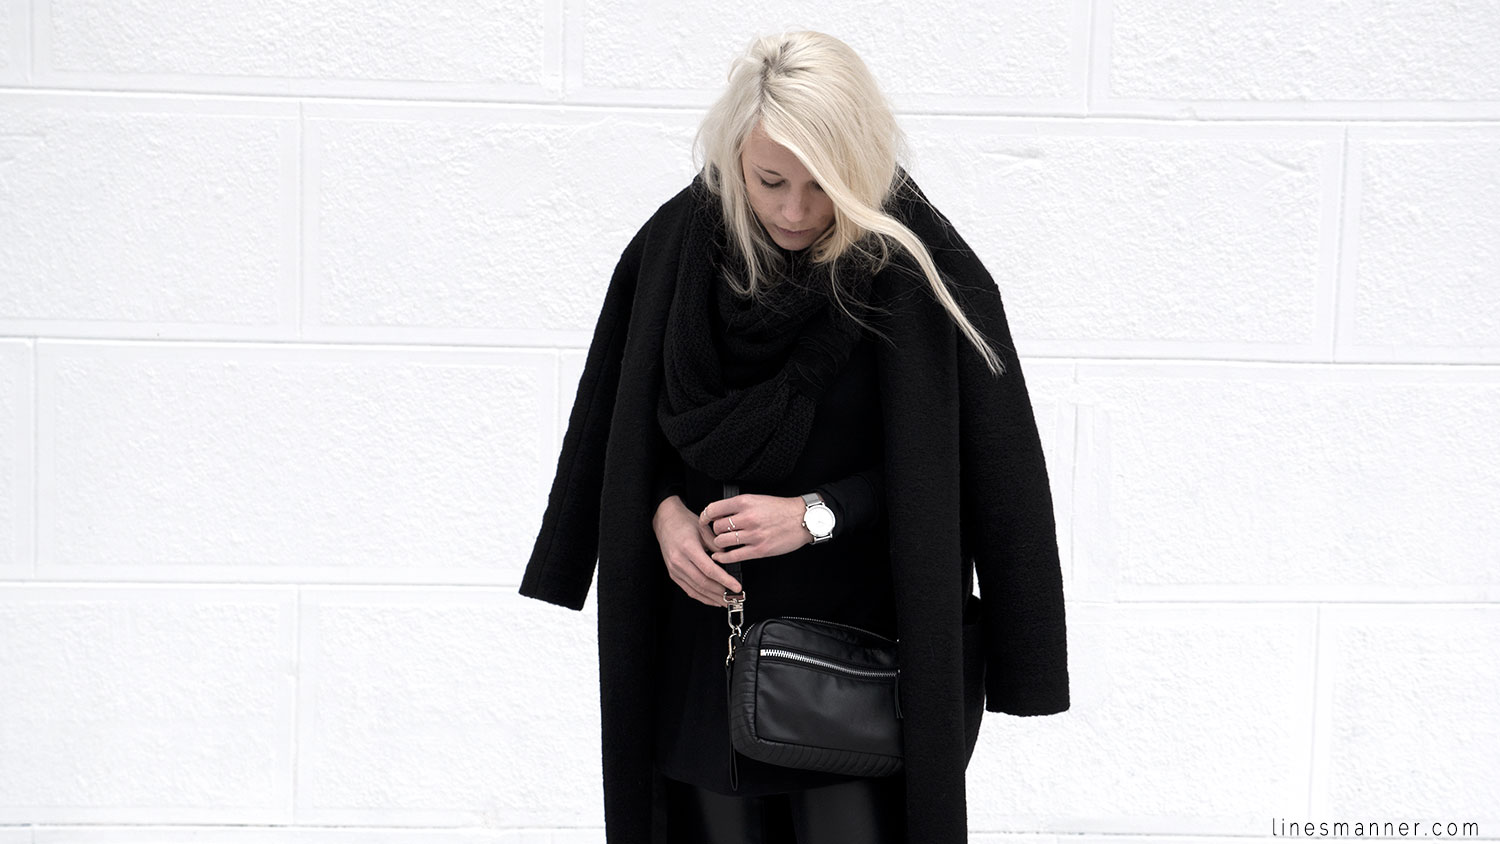 Lines-Manner-All_black_everything-monochrome-essentials-oversize-fit-textures-minimal-details-basics-staples-kayering-bundled-enveloped-silver-leather-2